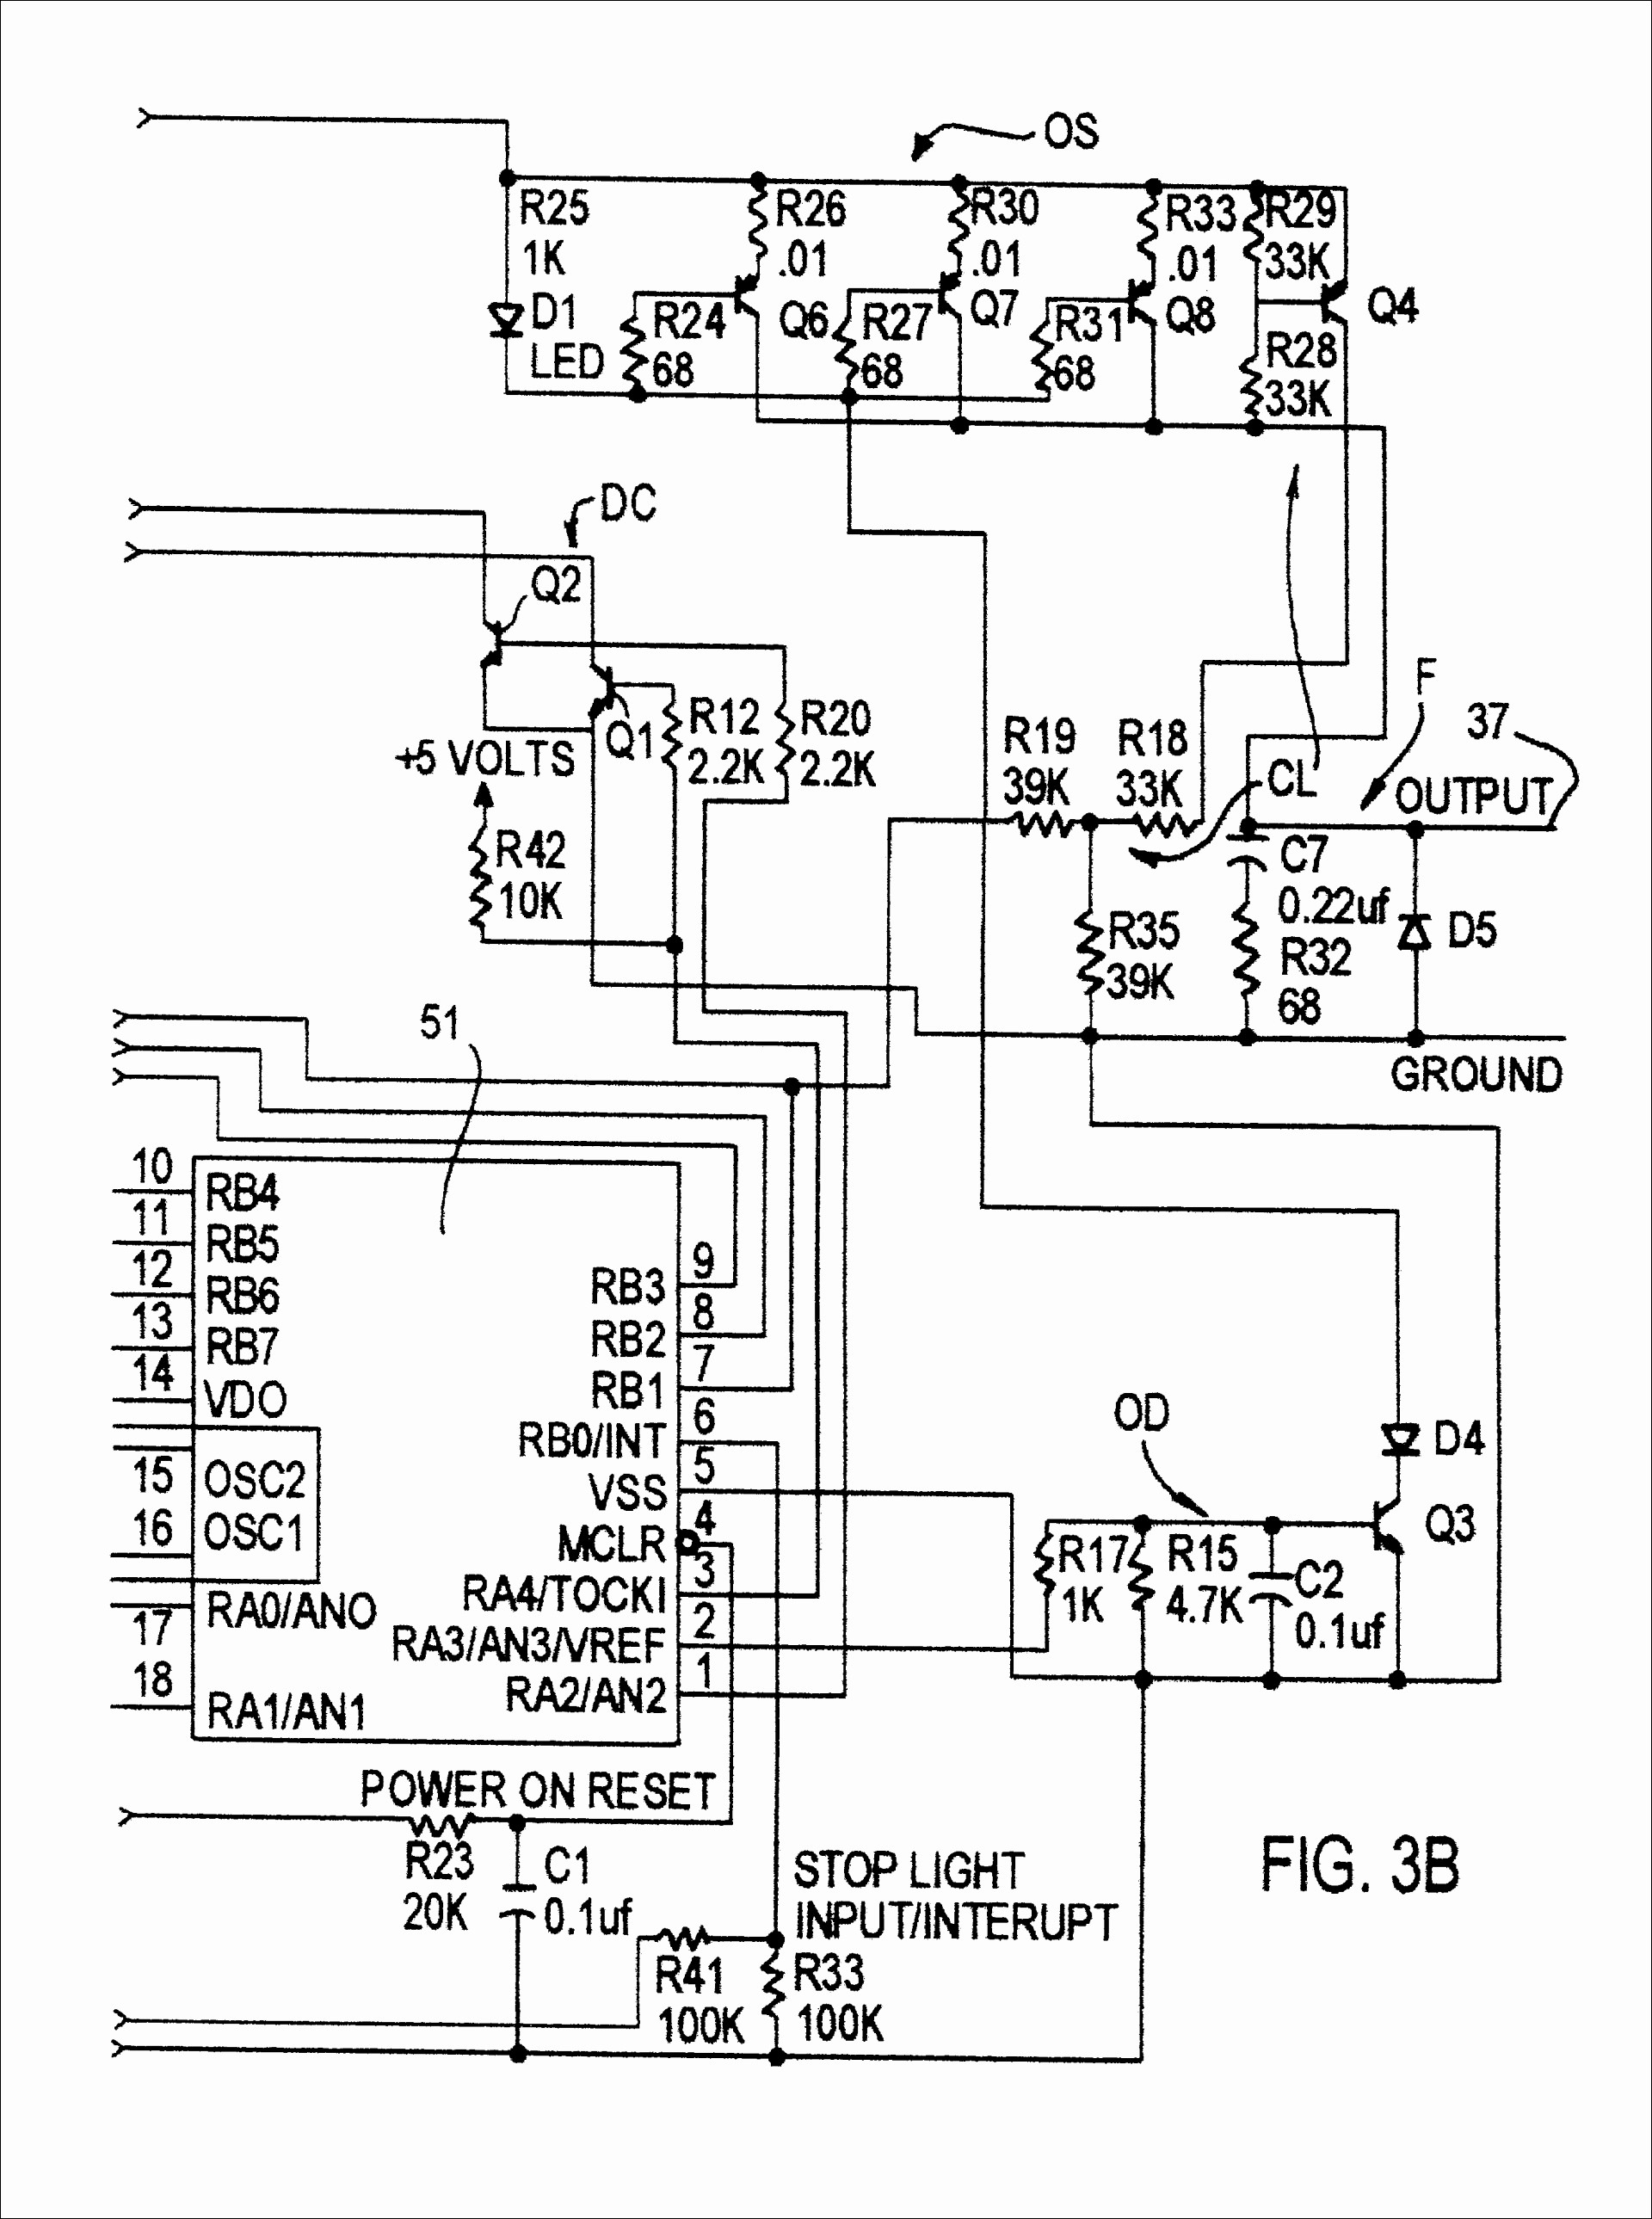 Chrysler 2 4 Engine Diagram 2002 Sebring Wiring Library 1999 Silverado Harness Routing Electrical 7